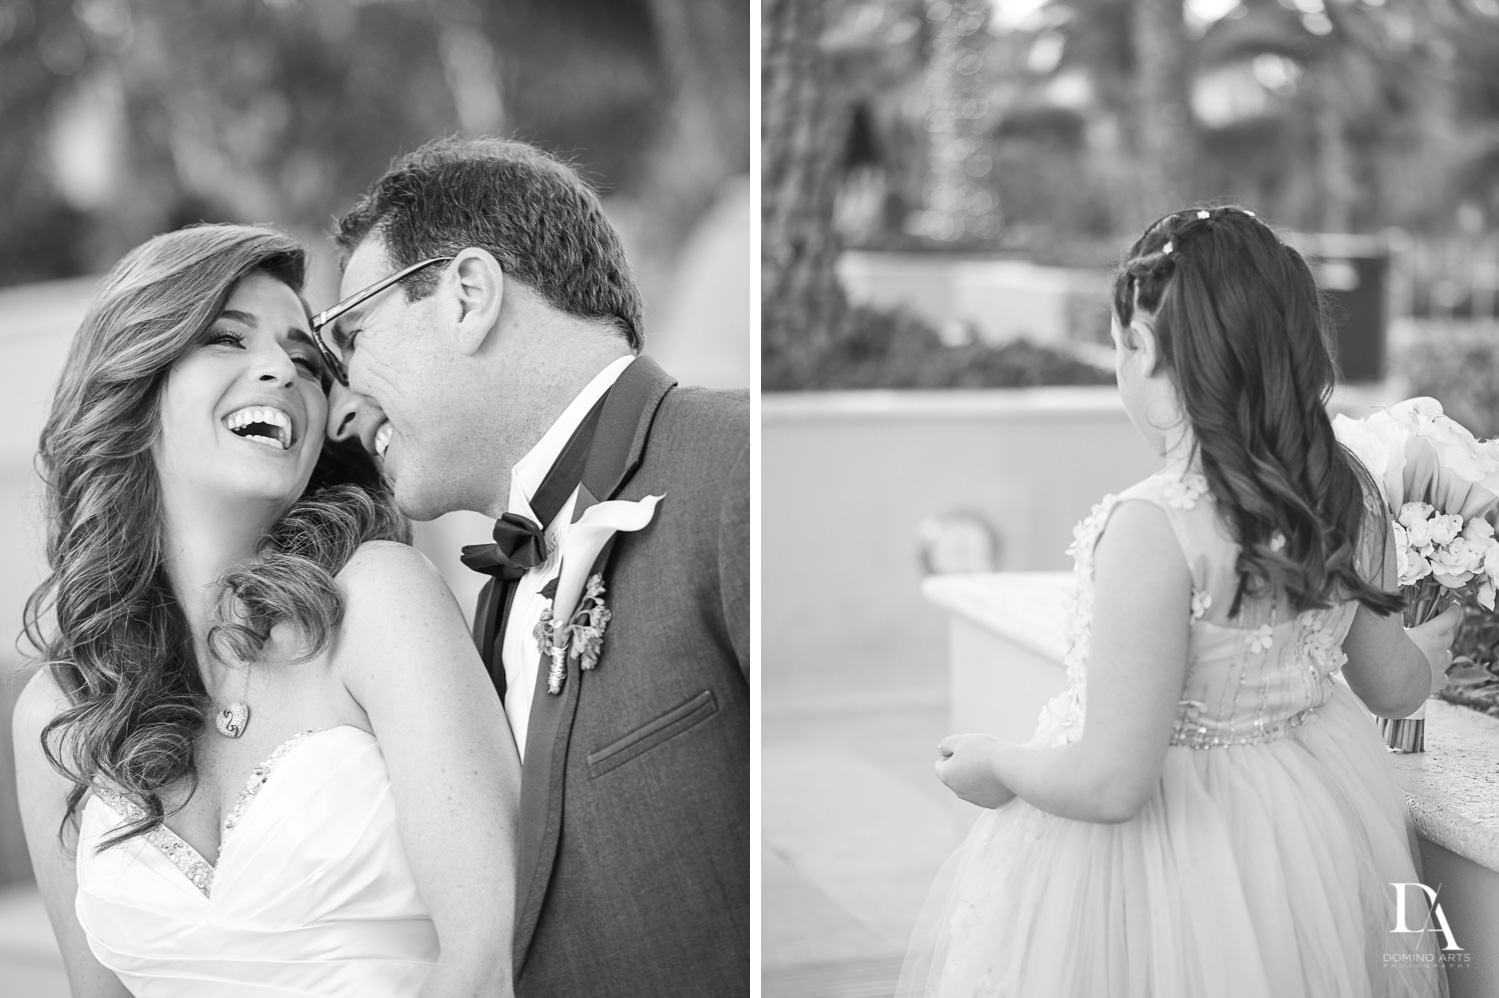 Lifestyle Wedding Photography in South Florida at Fort Lauderdale Marriott Harbor Beach Resort & Spa by Domino Arts Photography